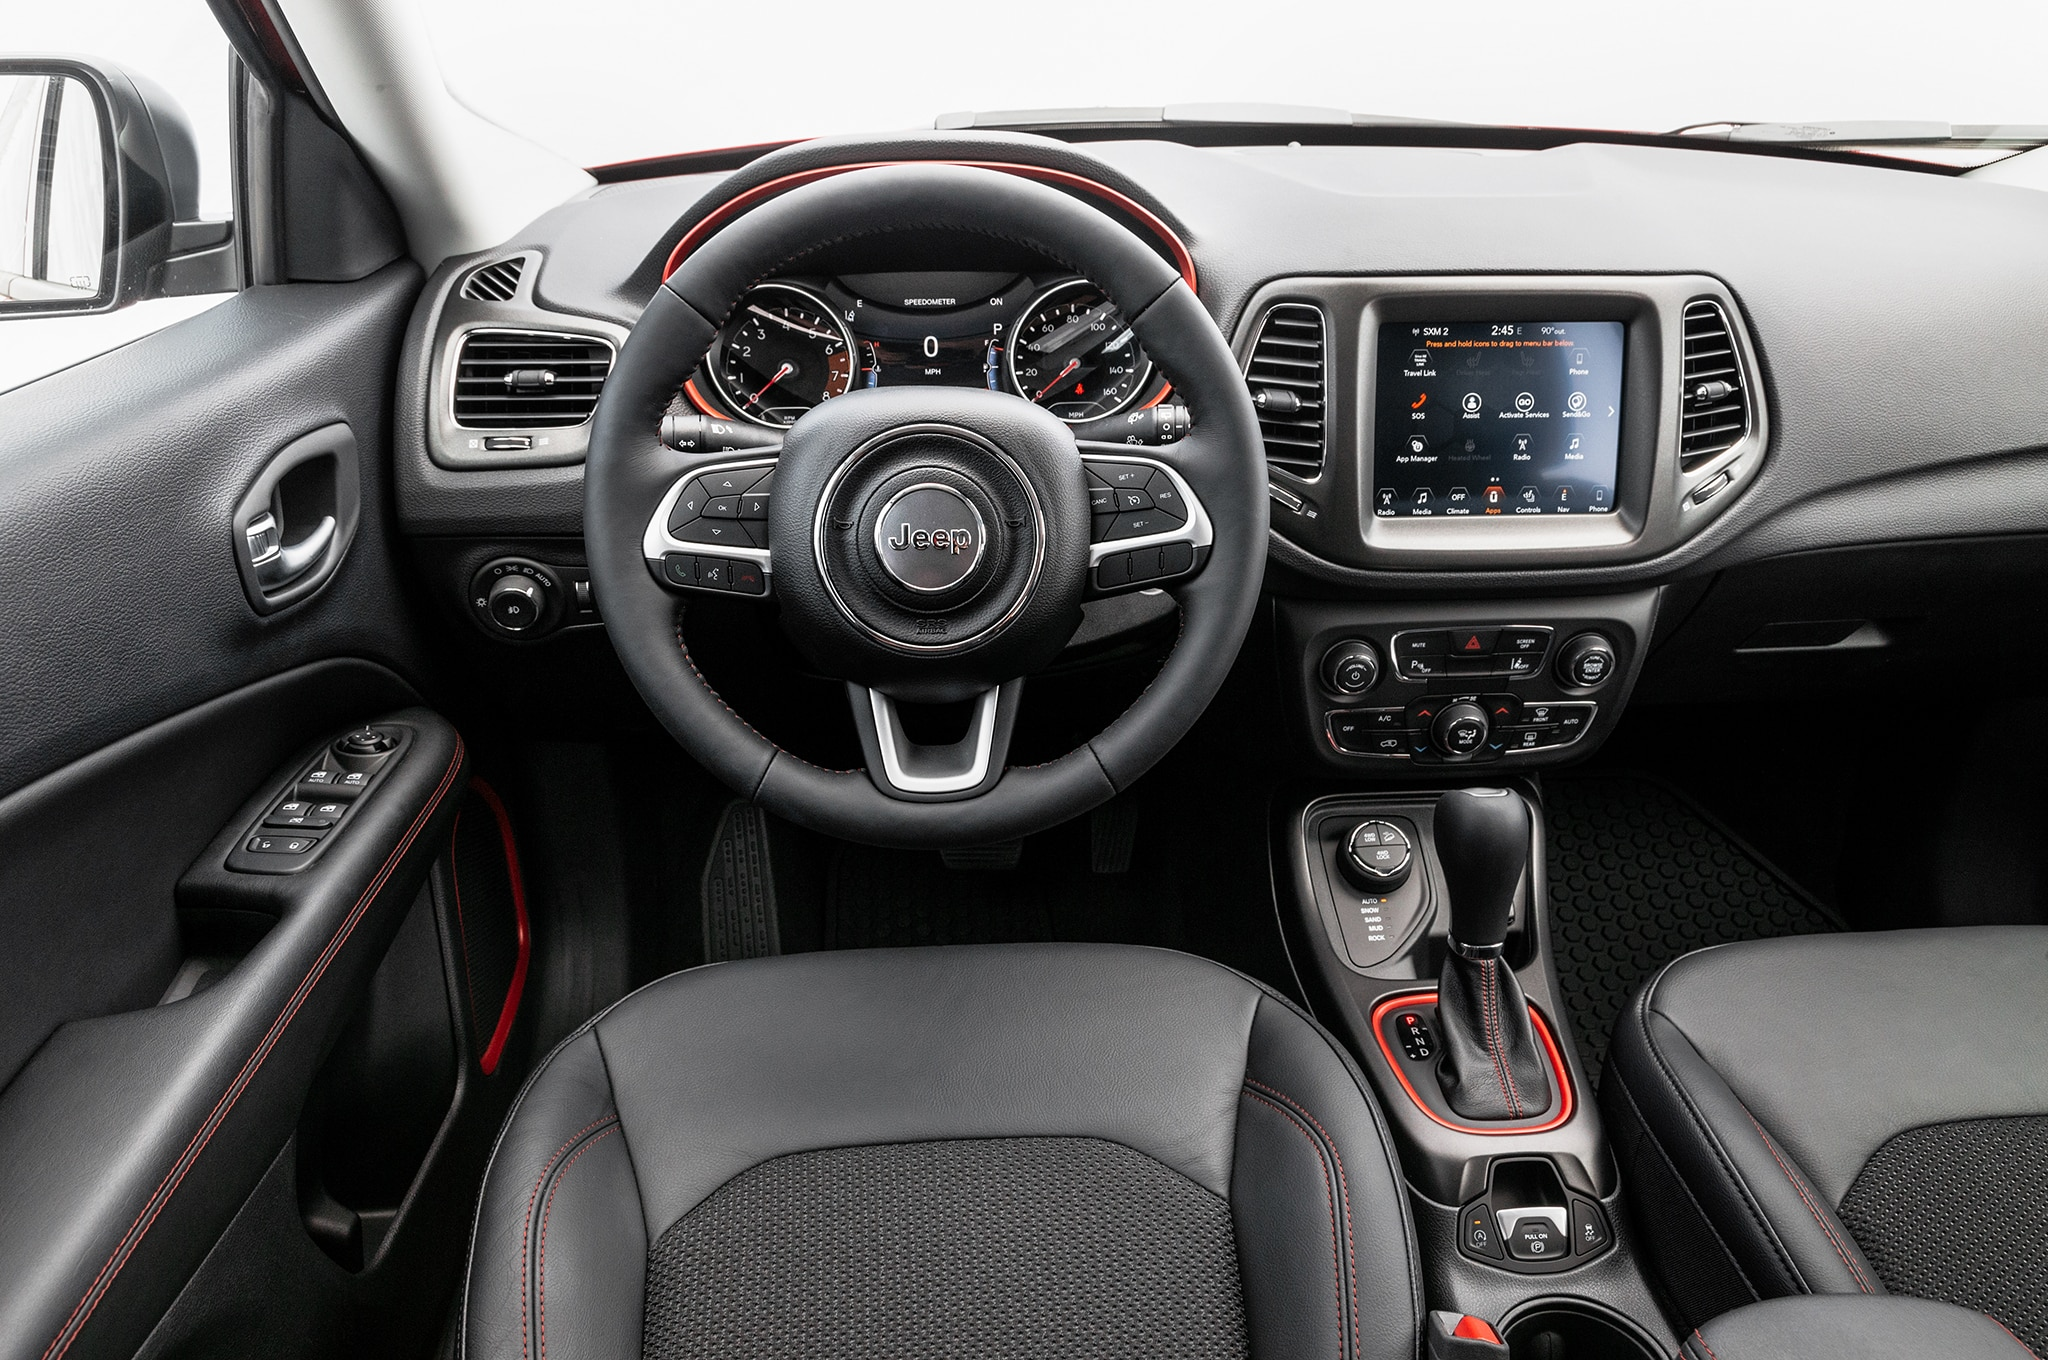 2017 Jeep Compass Limited 4x4 Trailhawk front interior ...